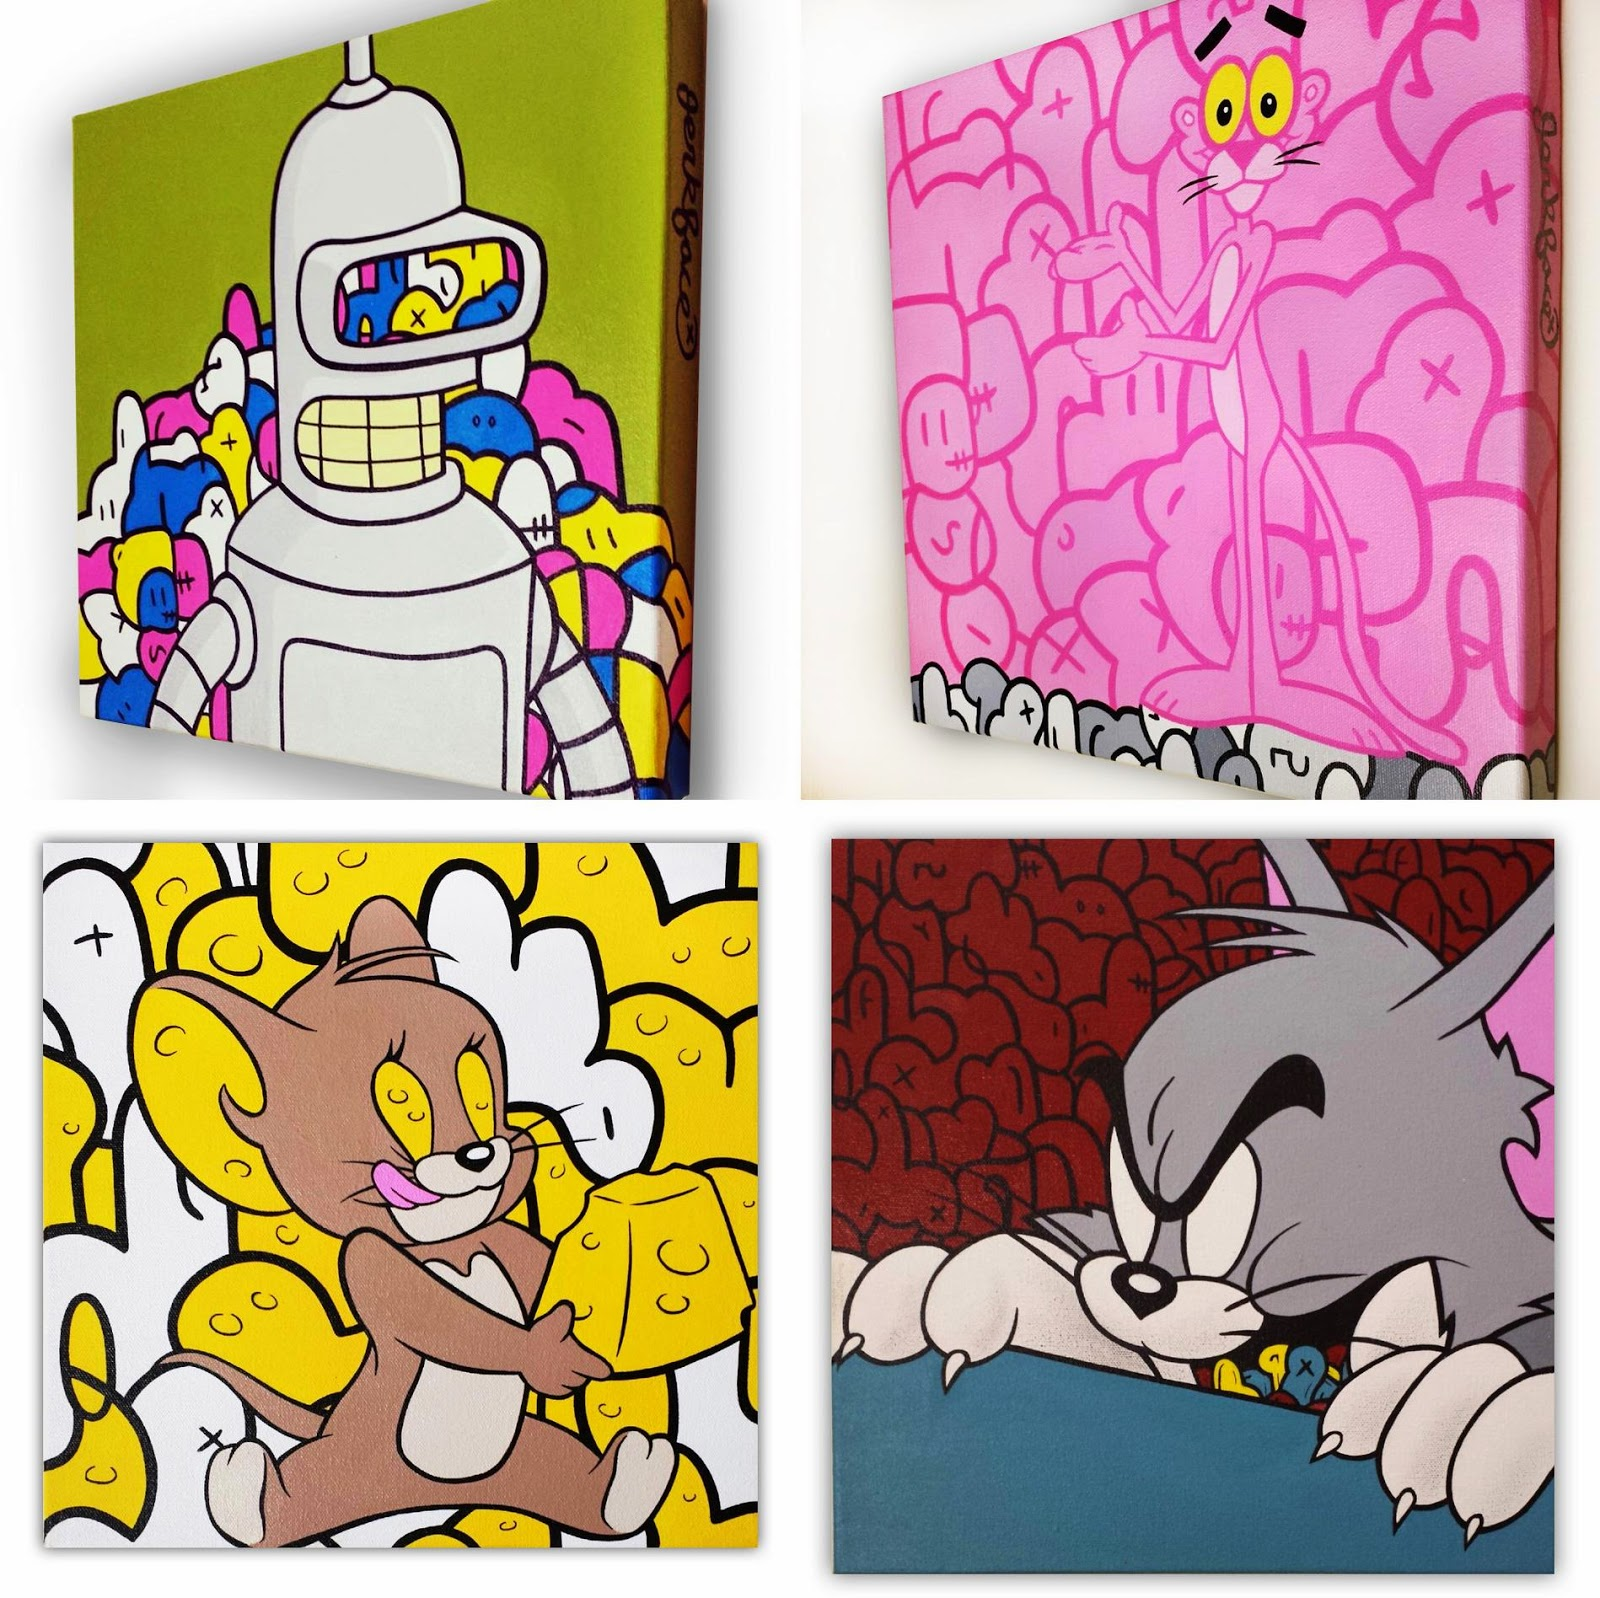 """30 Days of Jerk"" Pop Culture Painting Series by Jerkface - Futurama Bender, Pink Panther, Tom & Jerry"